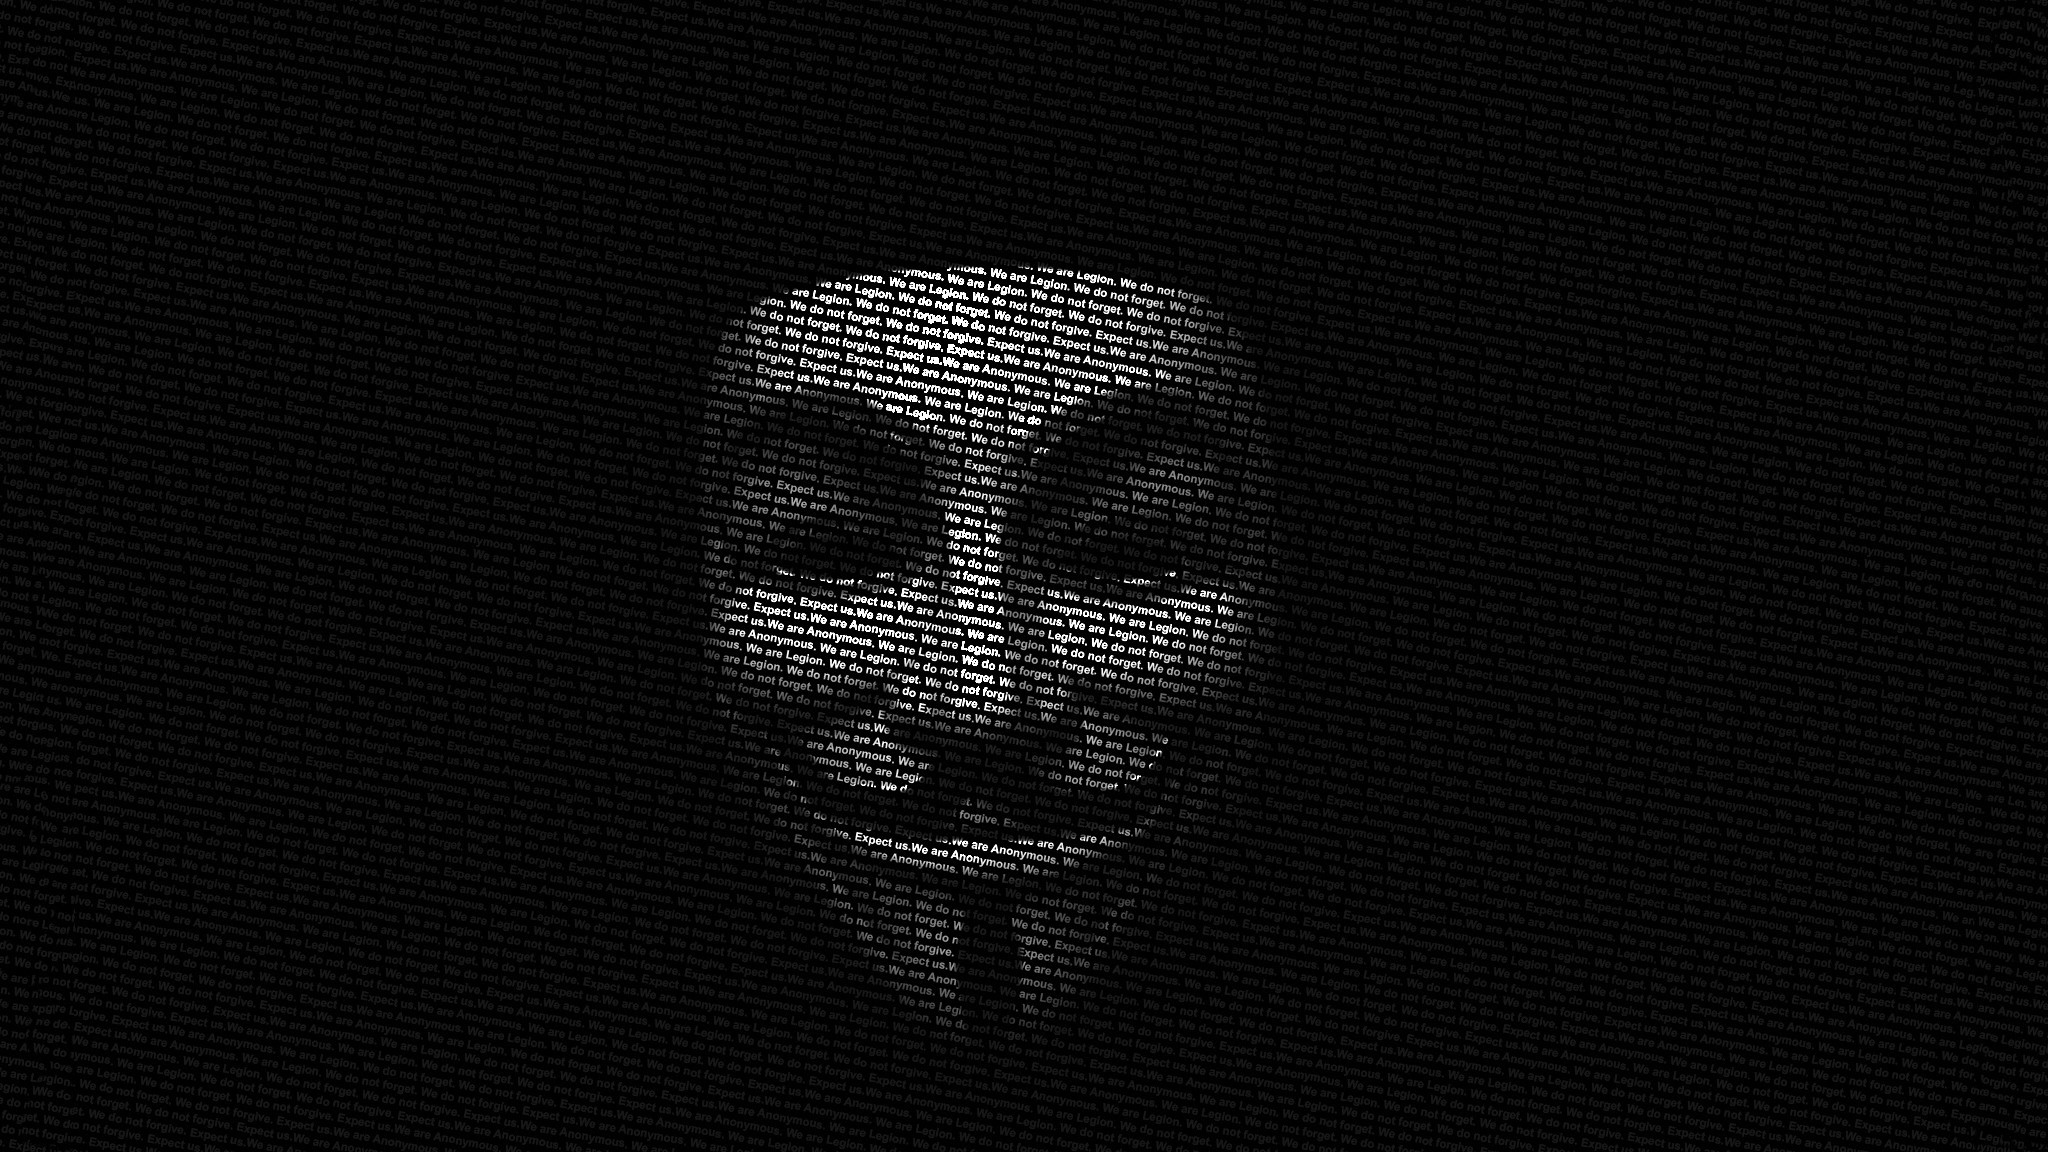 V for vendetta wallpaper hd wallpapertag - V wallpaper hd ...